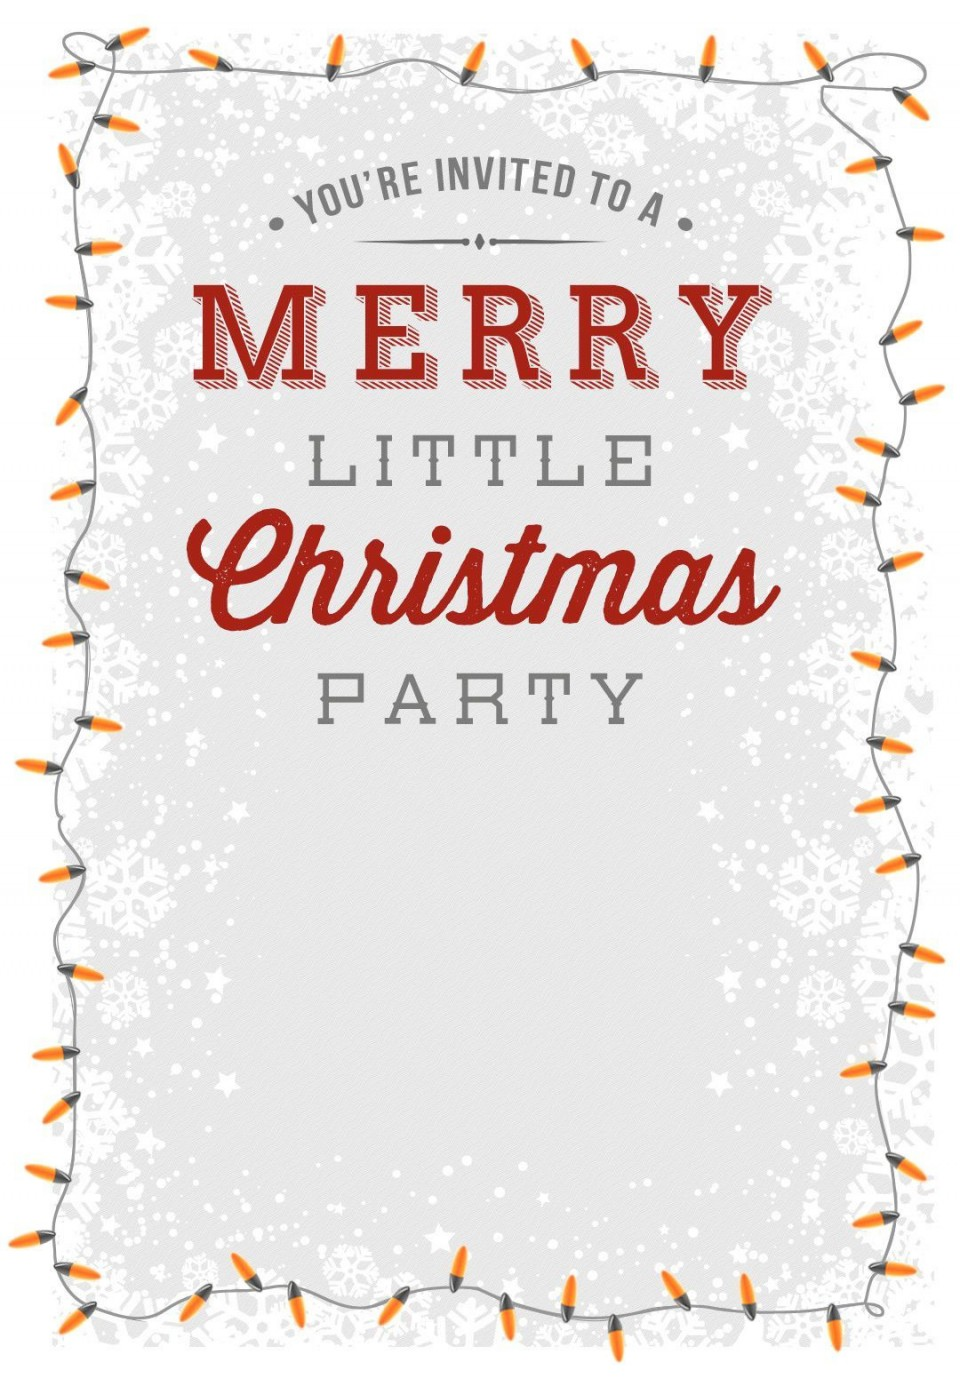 006 Formidable Xma Party Invite Template Free Example  Holiday Invitation Word Download Christma960